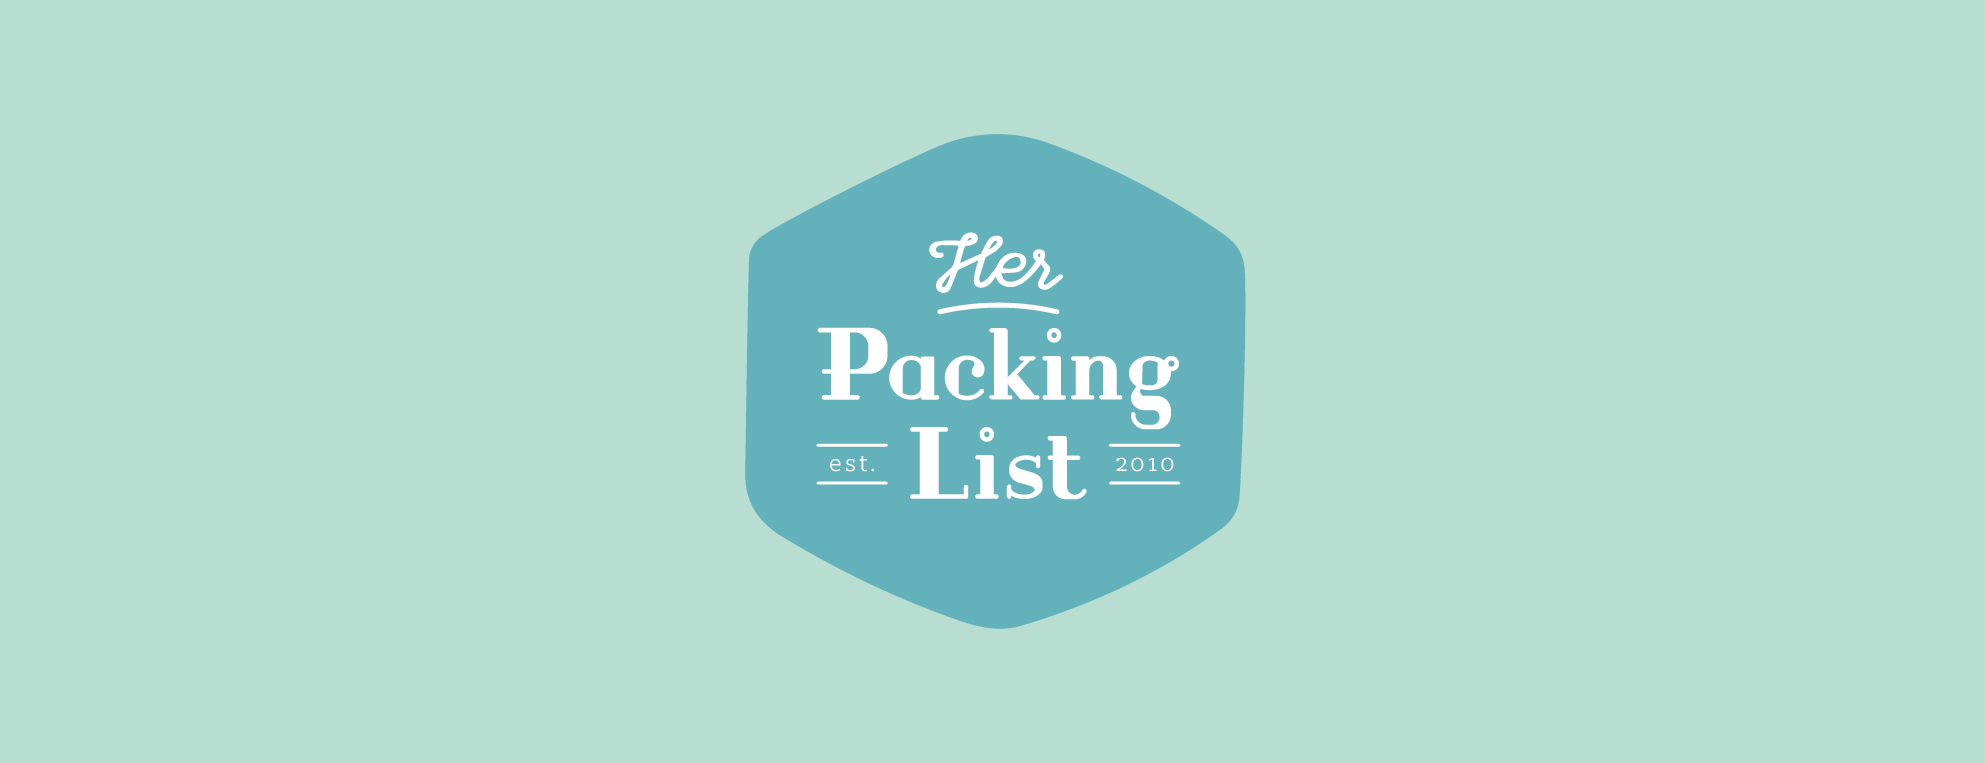 Her Packing List logo design by Pace Creative Design Studio